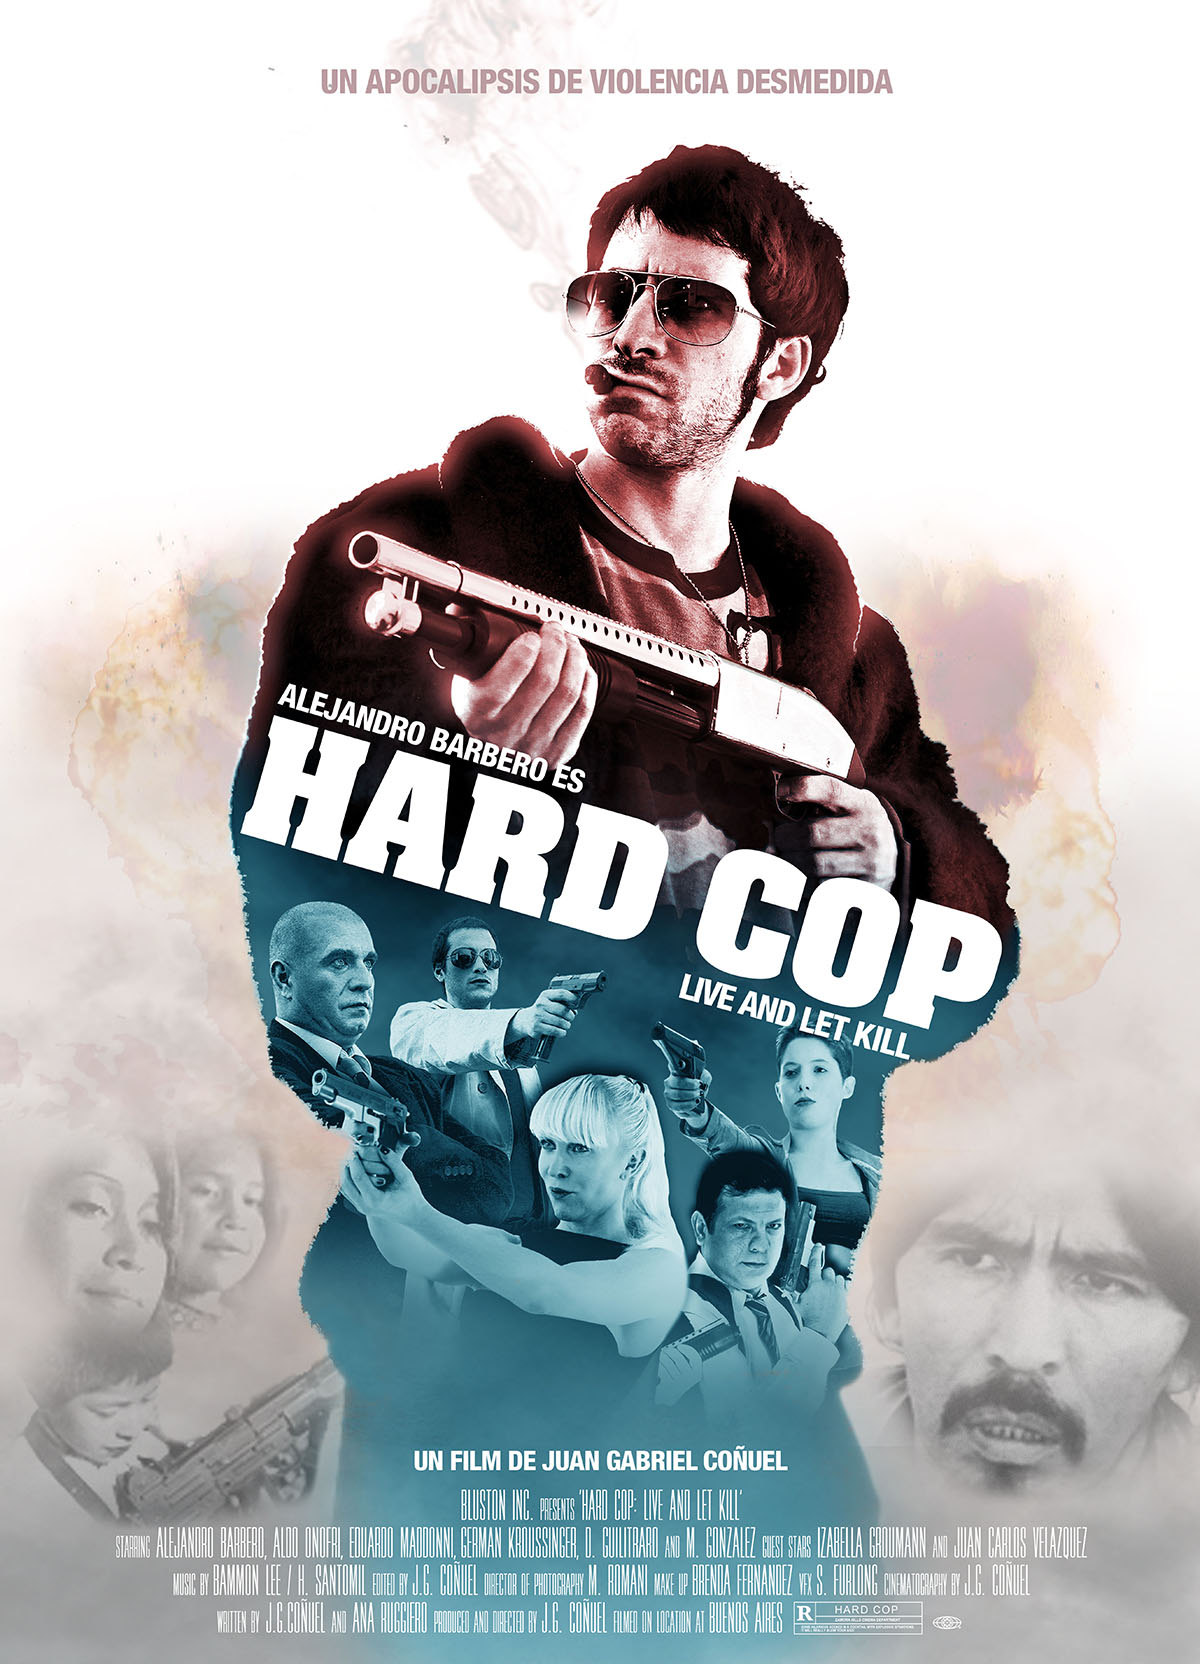 HARD COP POSTER VERSION 2